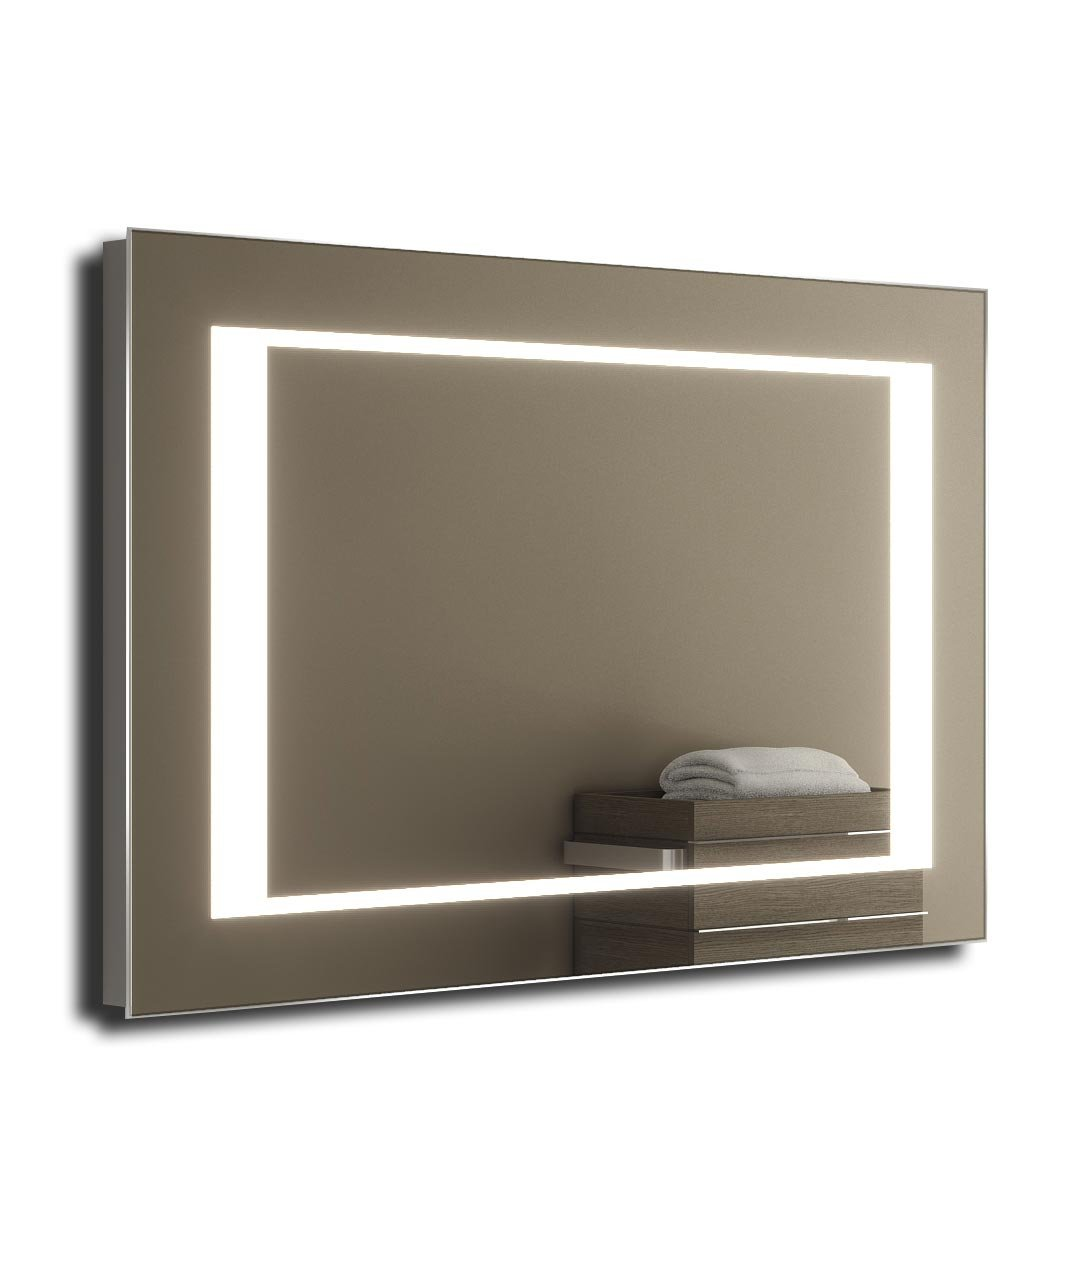 Kalki Shaver LED Bathroom Mirror With Demister Pad & Sensor k48i chic